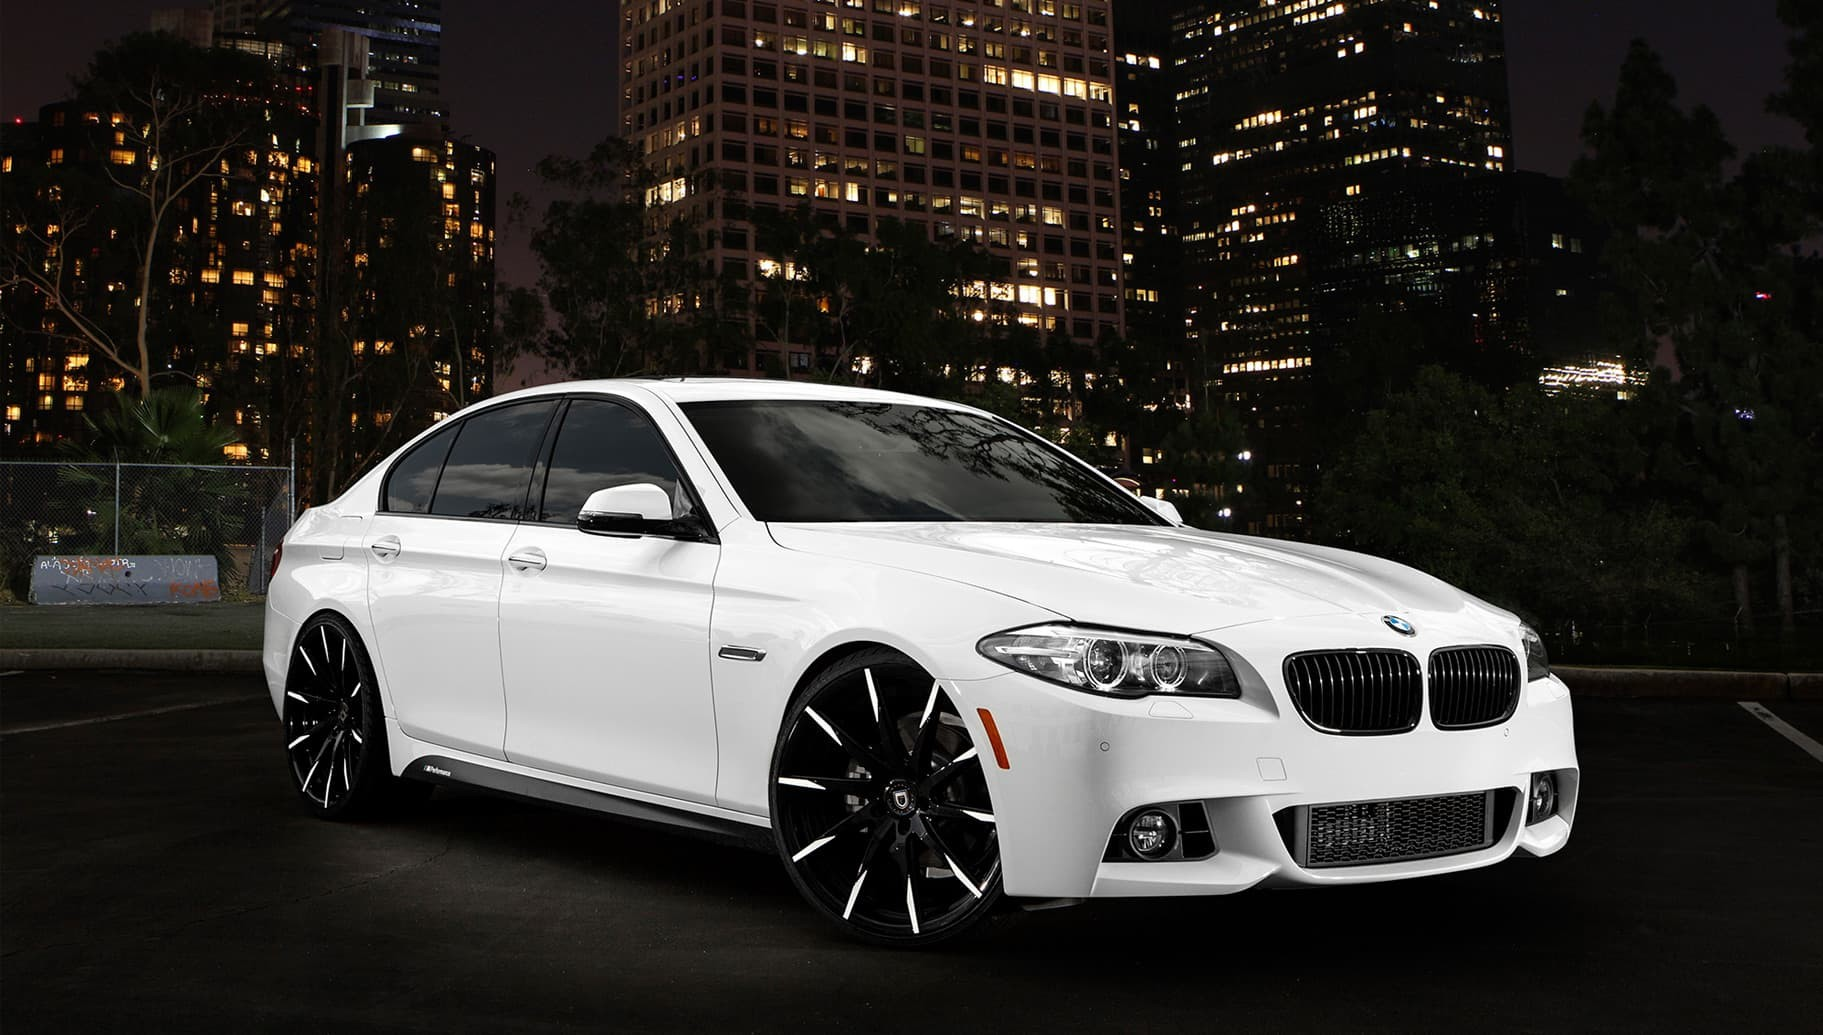 Customs CSS-15 on the 2014 BMW 5 Series